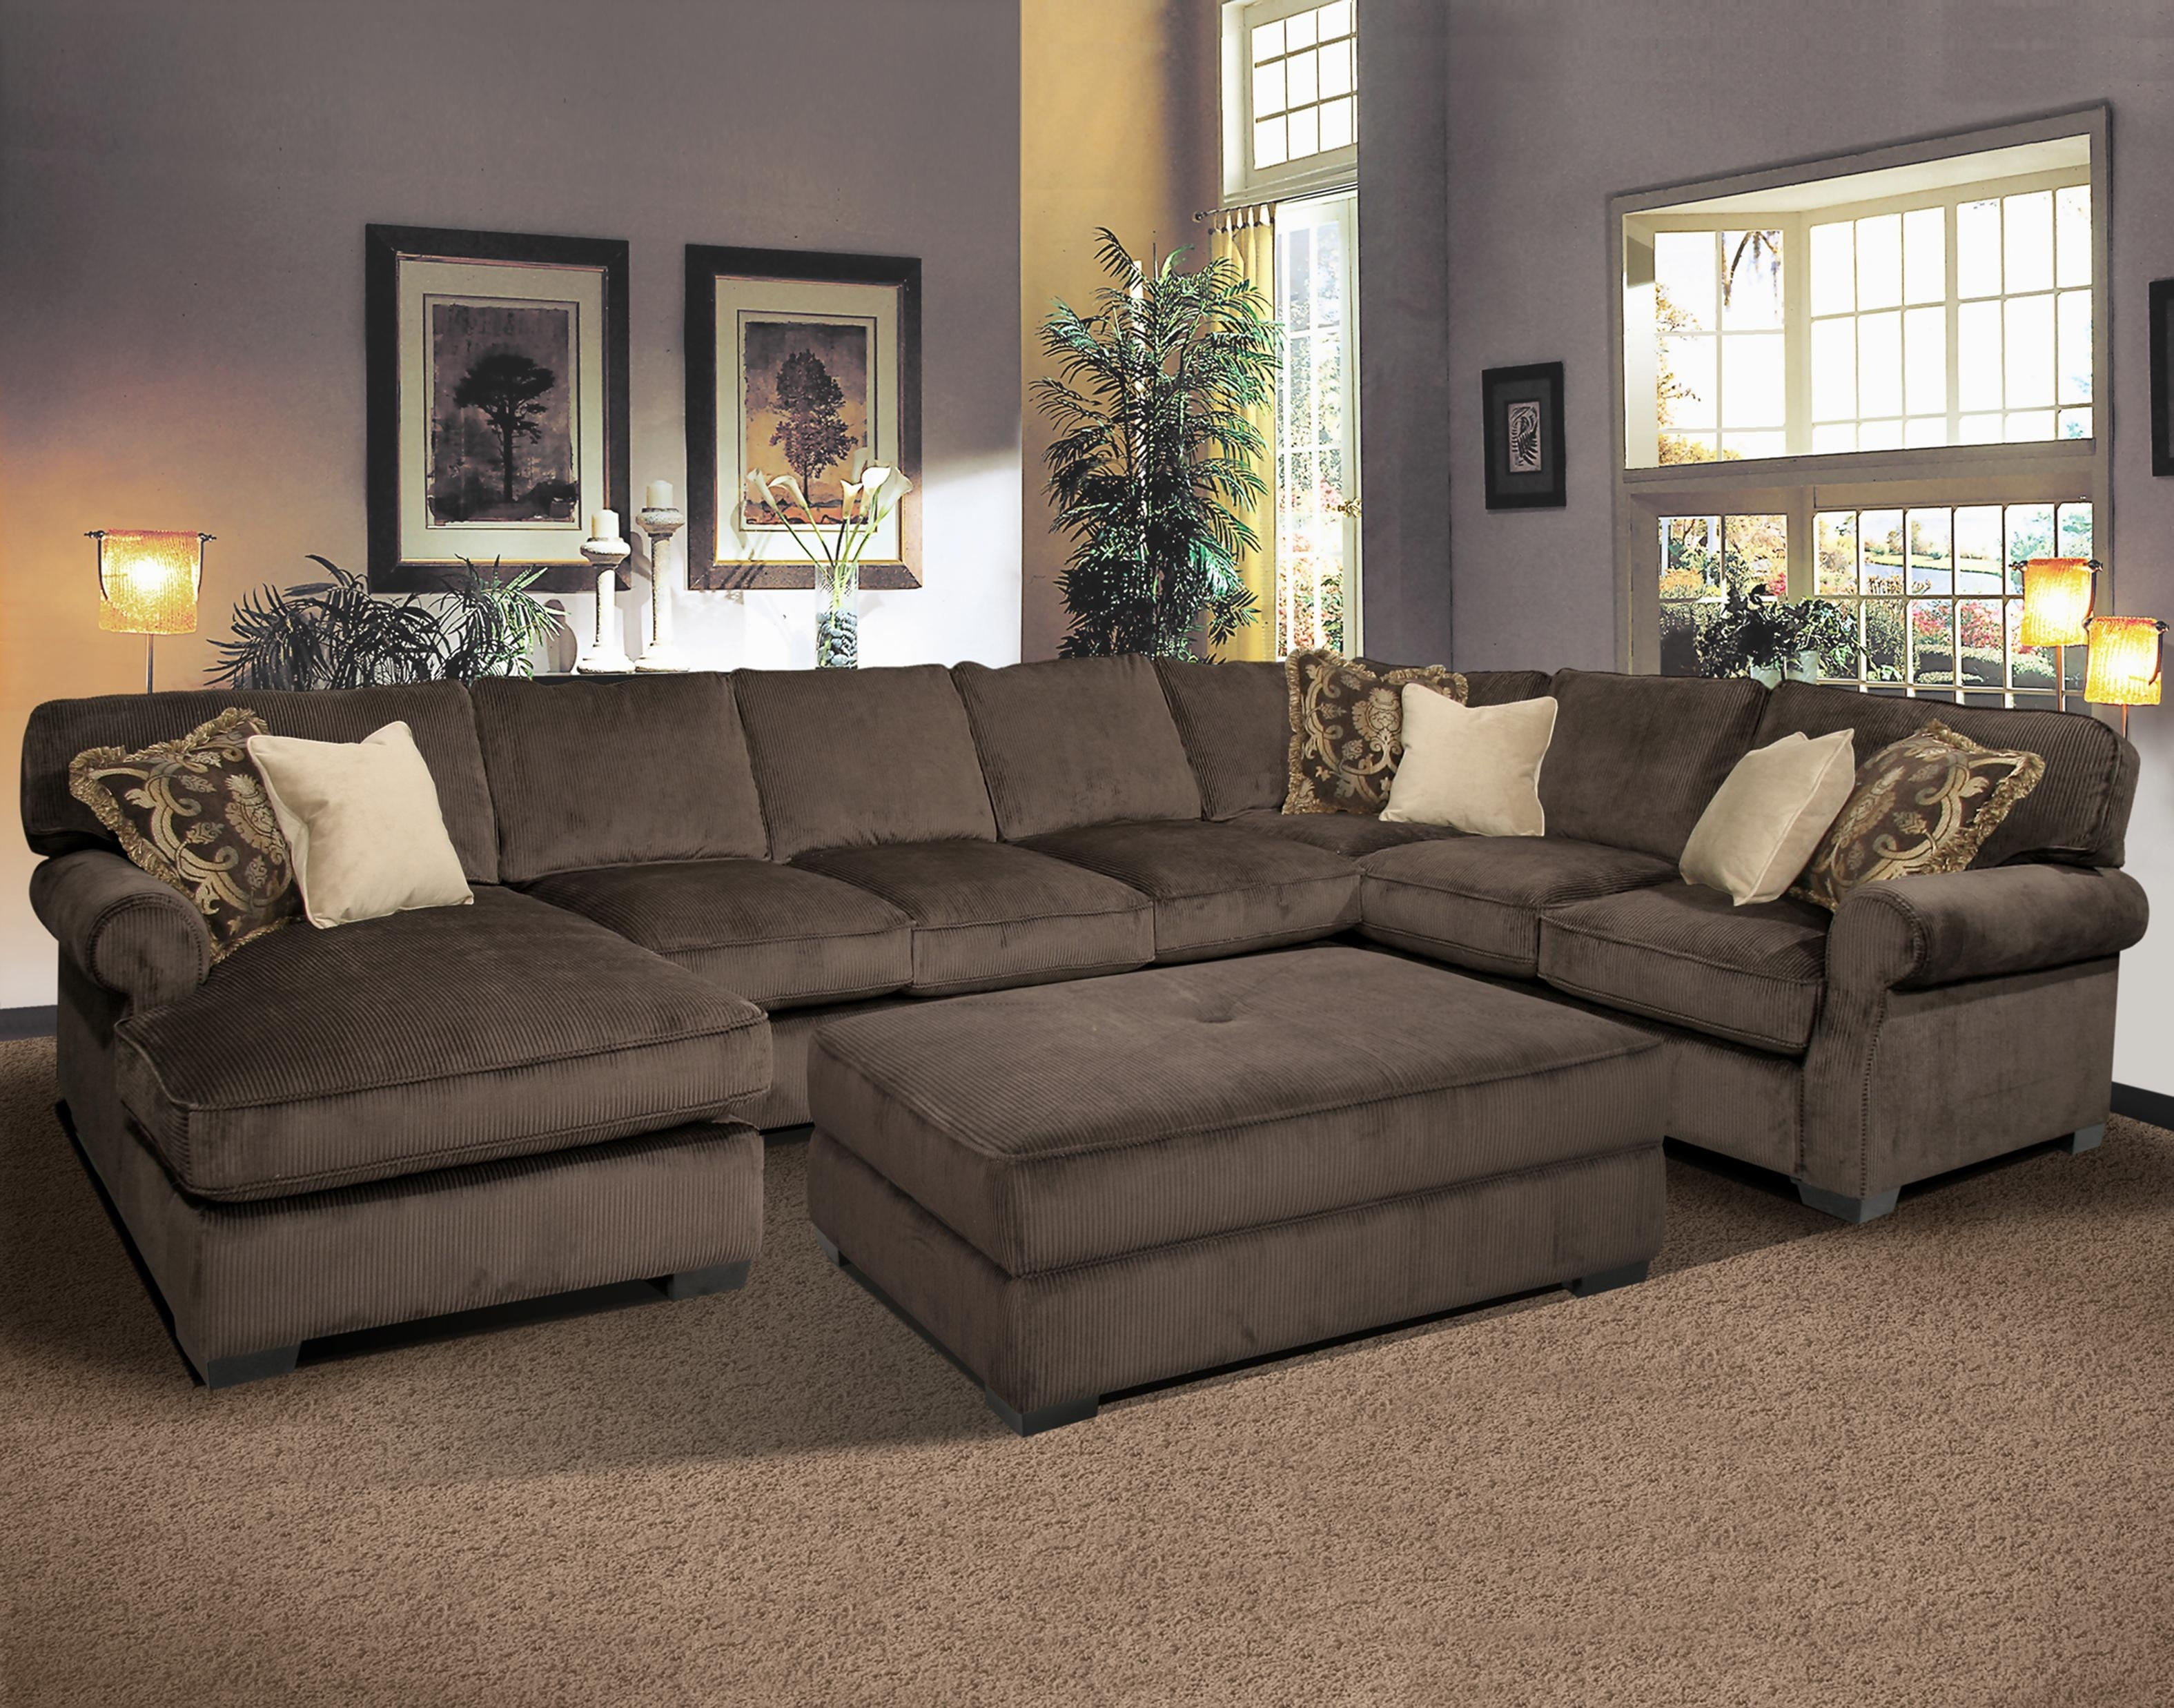 Importance Of U Shaped Sofa In The Furniture Market Regarding With Regard To Extra Large U Shaped Sectionals (View 6 of 10)